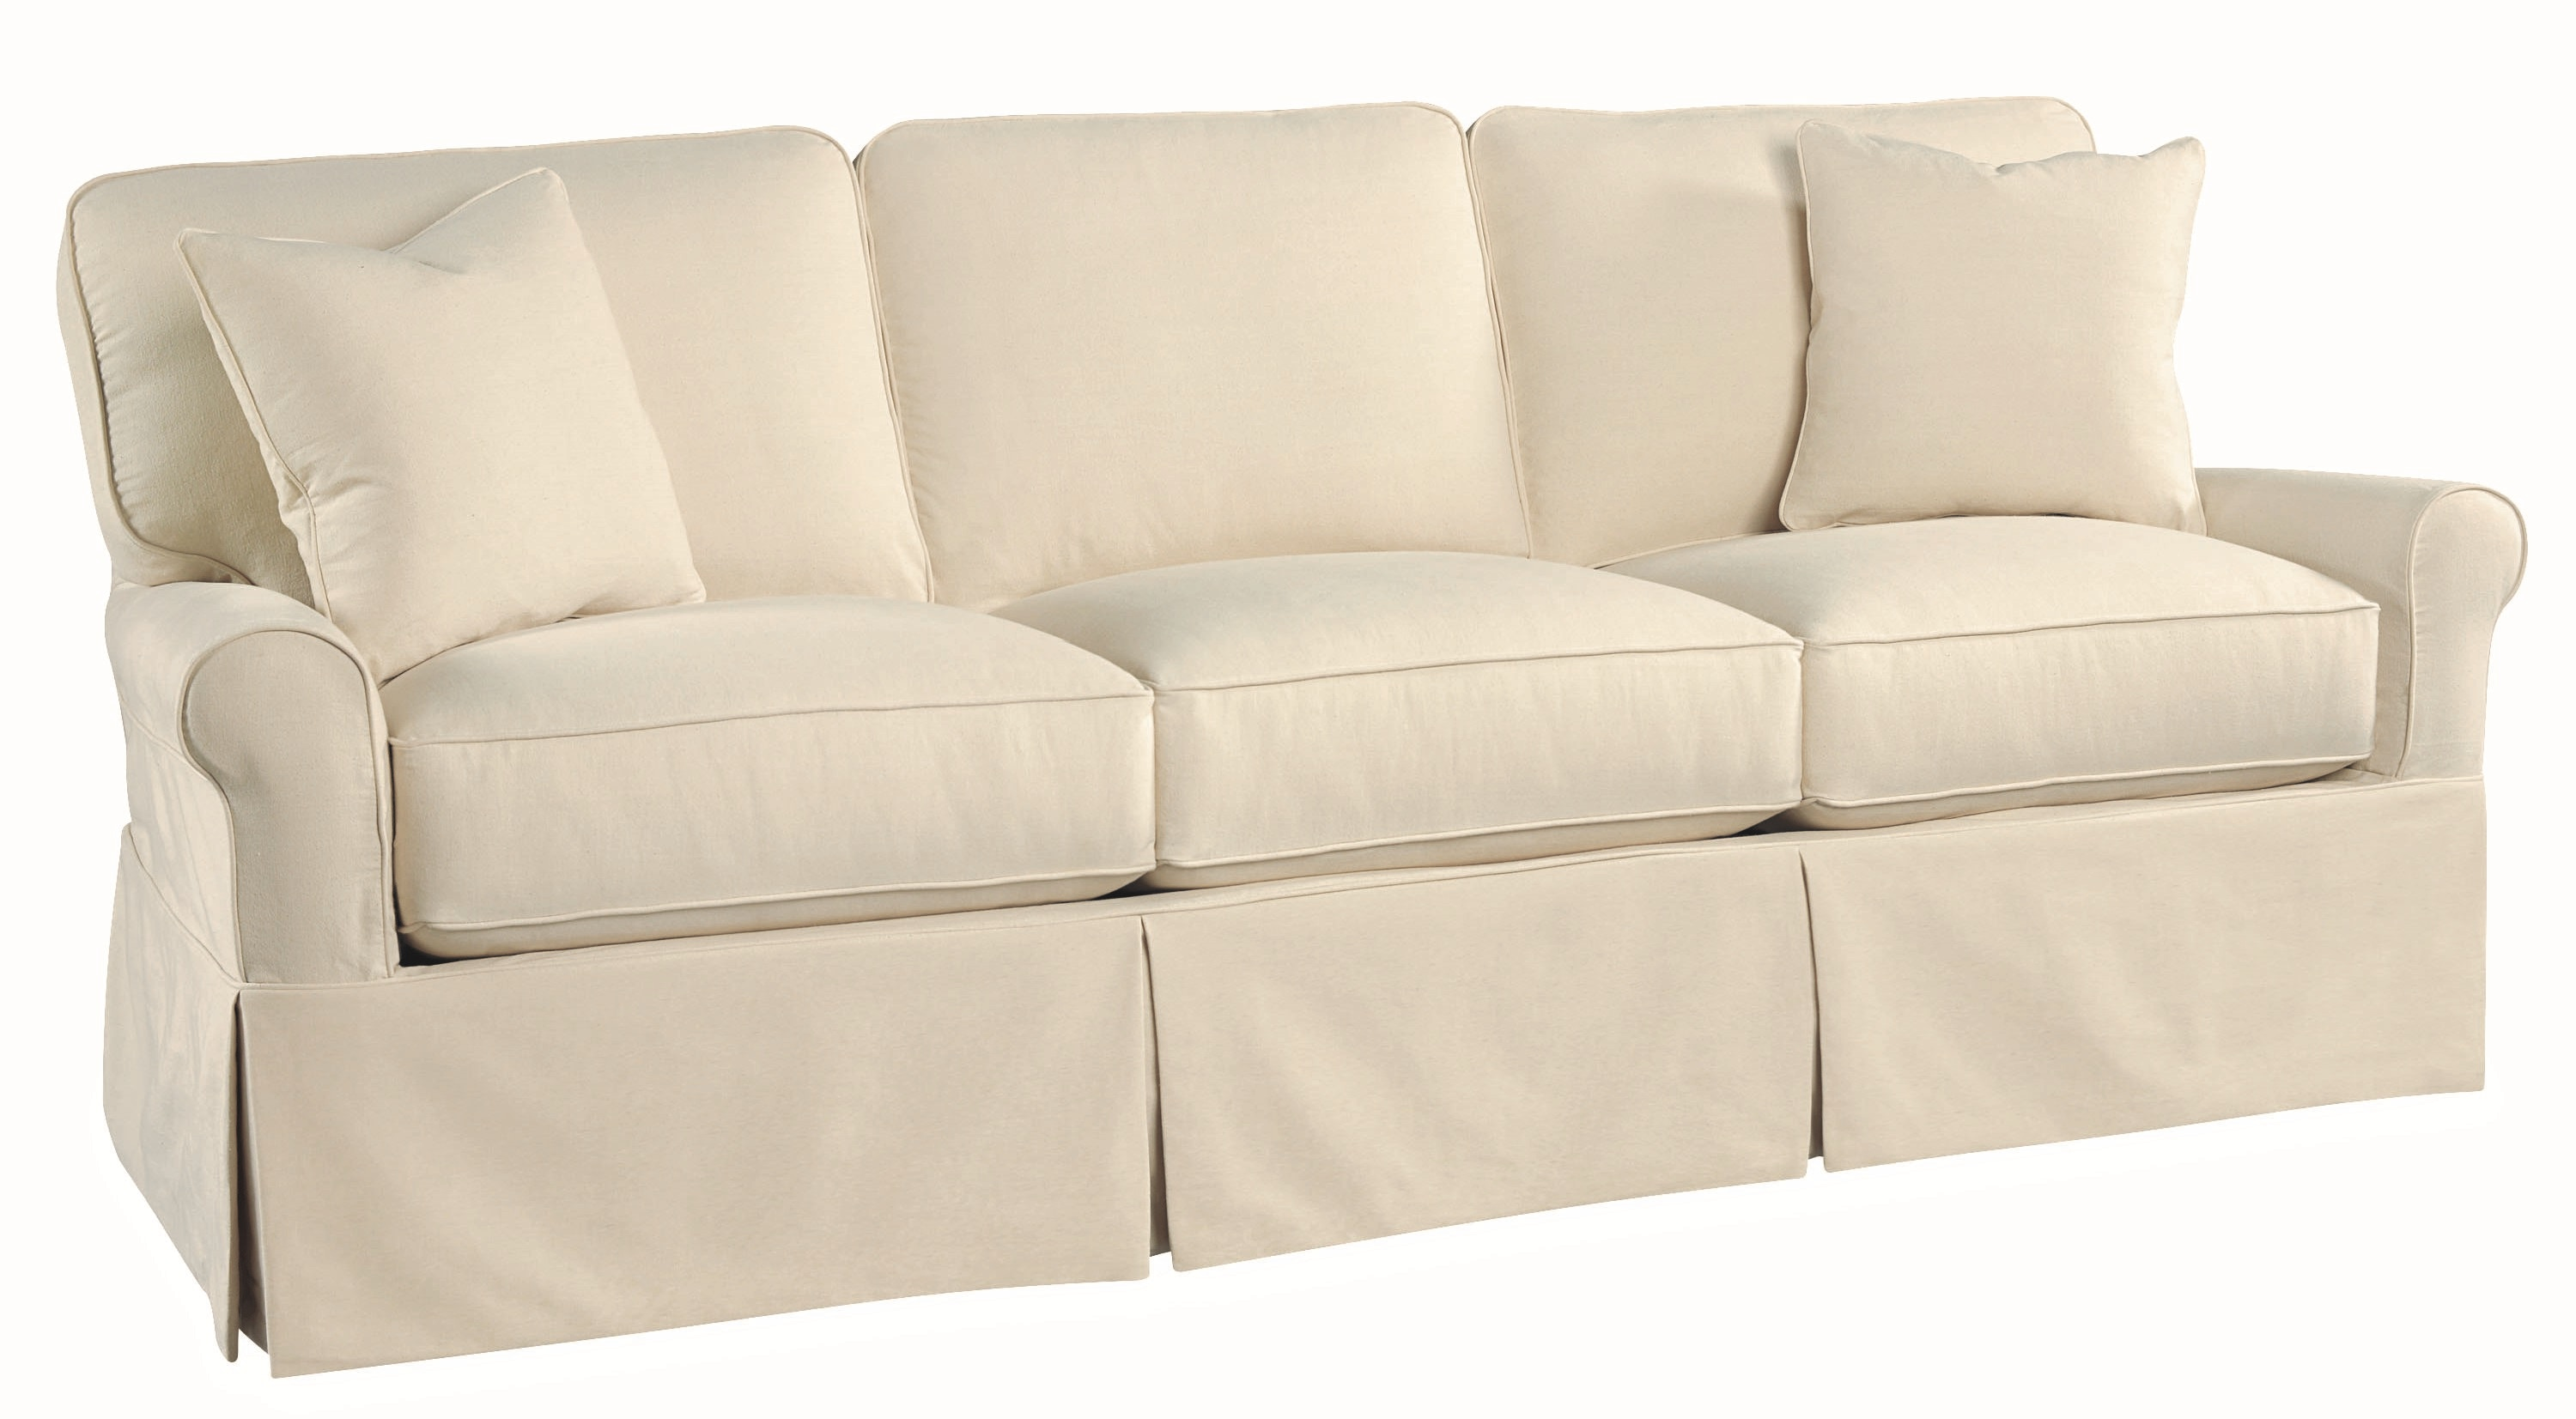 lee industries sofa prices leather set in dubai living room slipcovered c5632 03